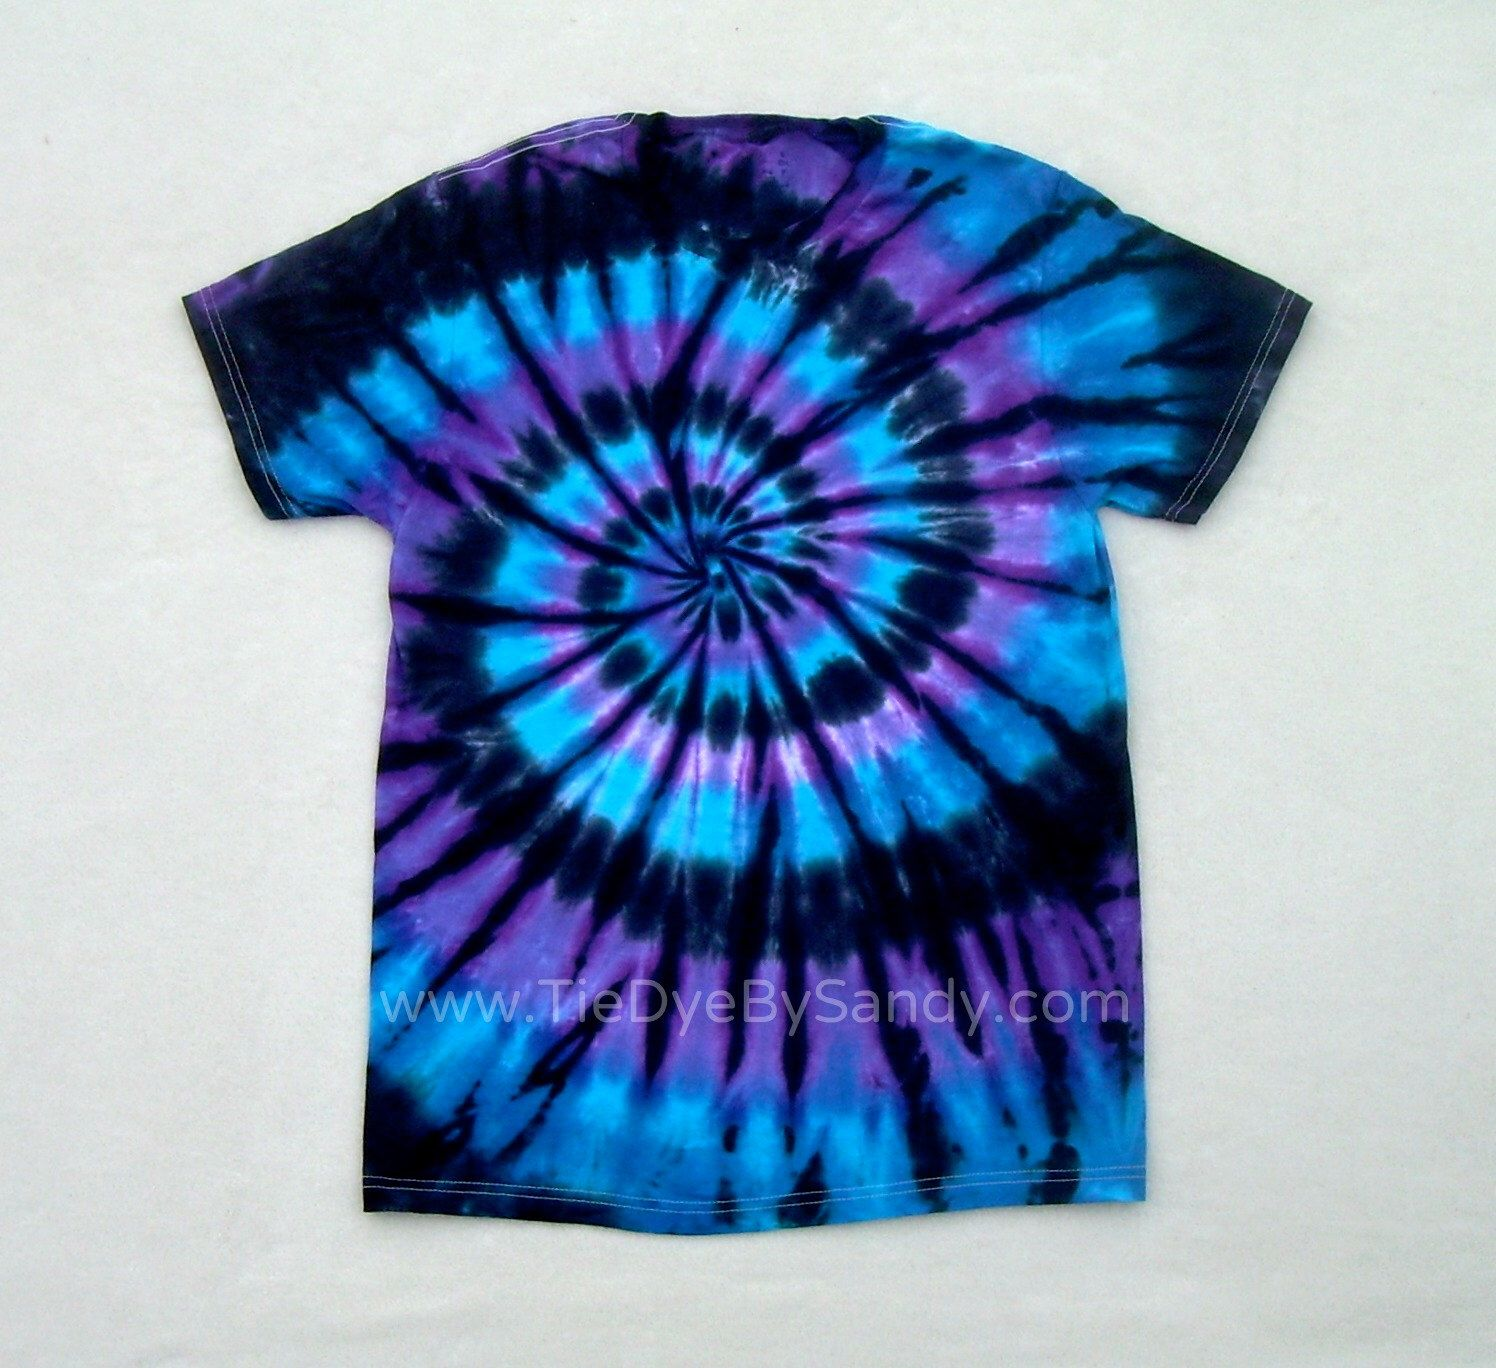 0e1896677a5 Tie Dye Shirt Moon Shadow Spiral Blue, Purple, Black by TieDyeBySandy on  Etsy https